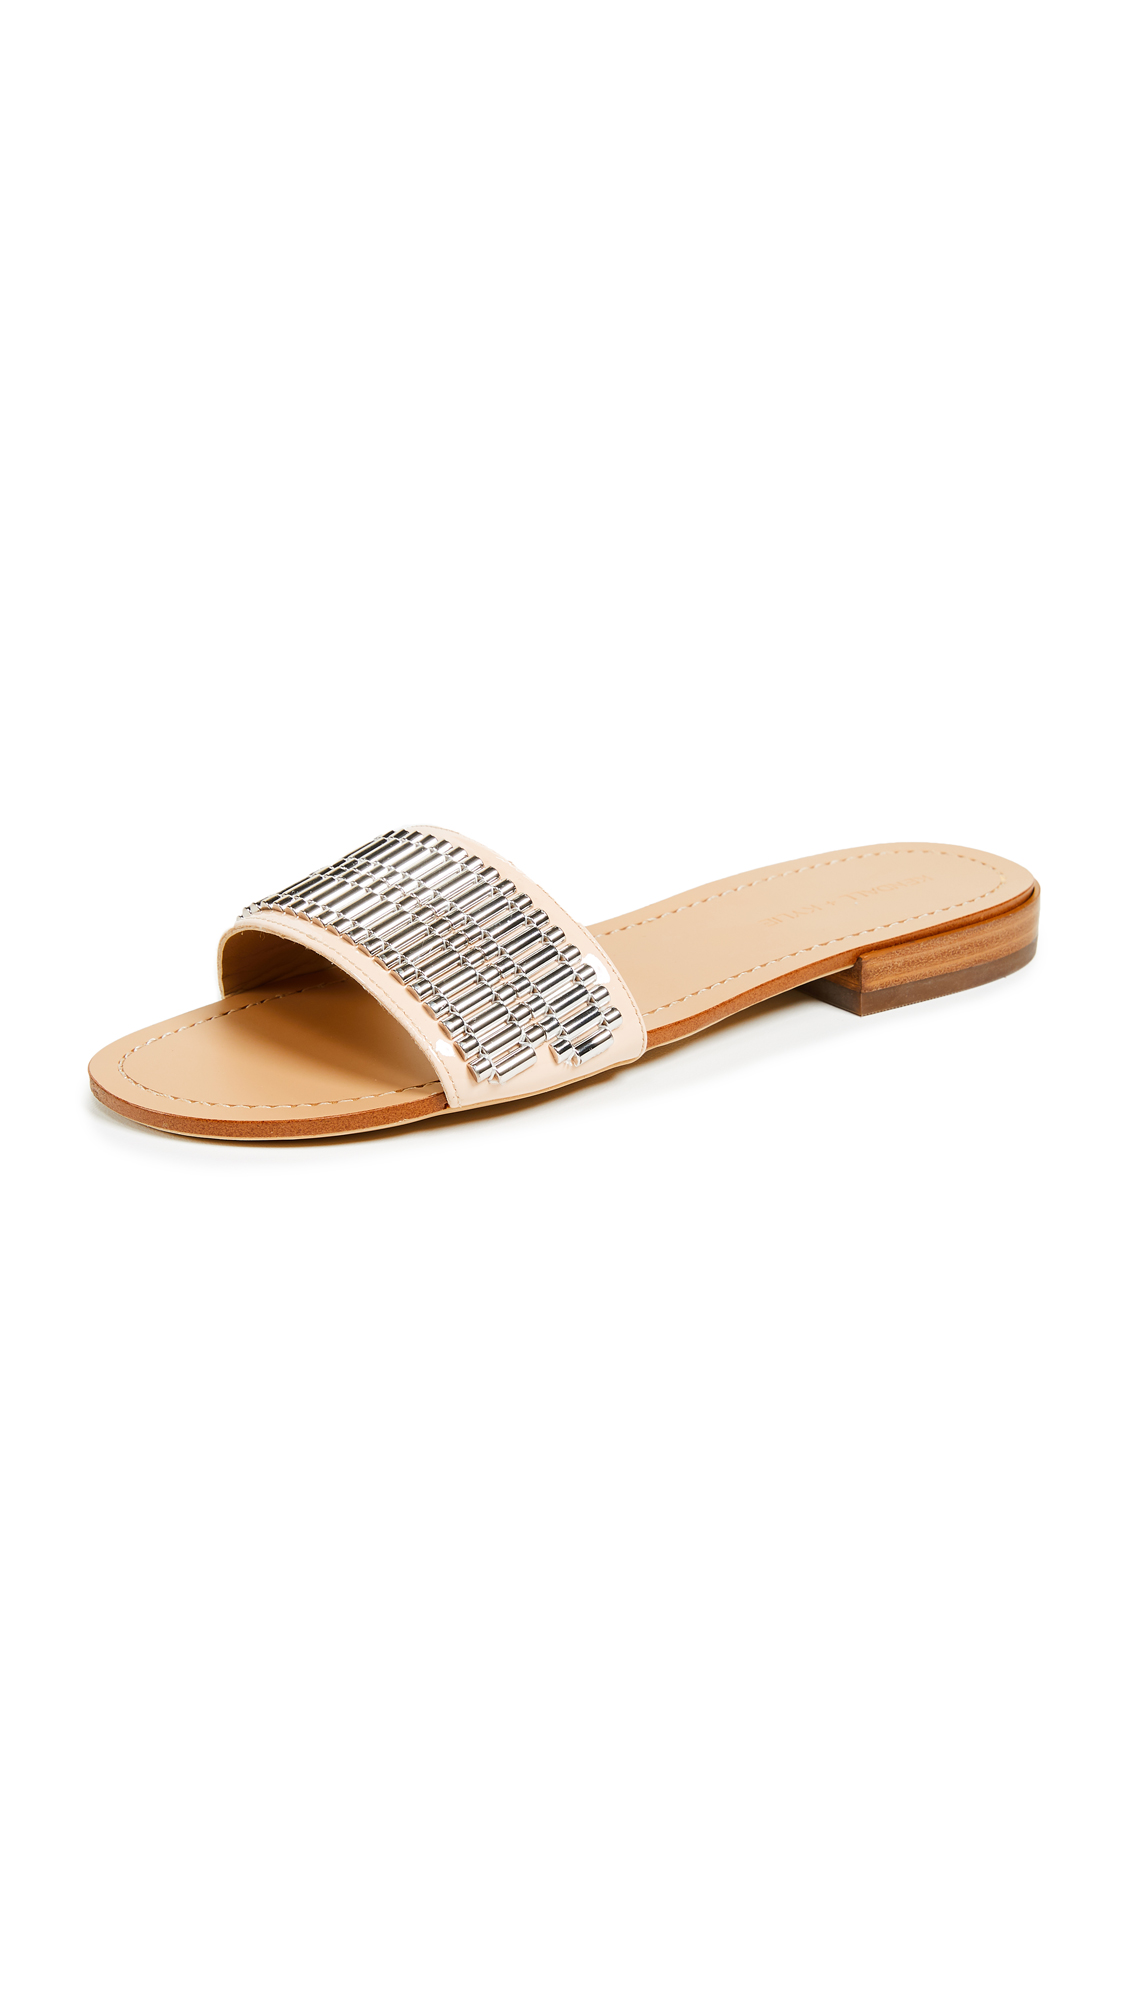 KENDALL + KYLIE Kennedy Slides - Nude